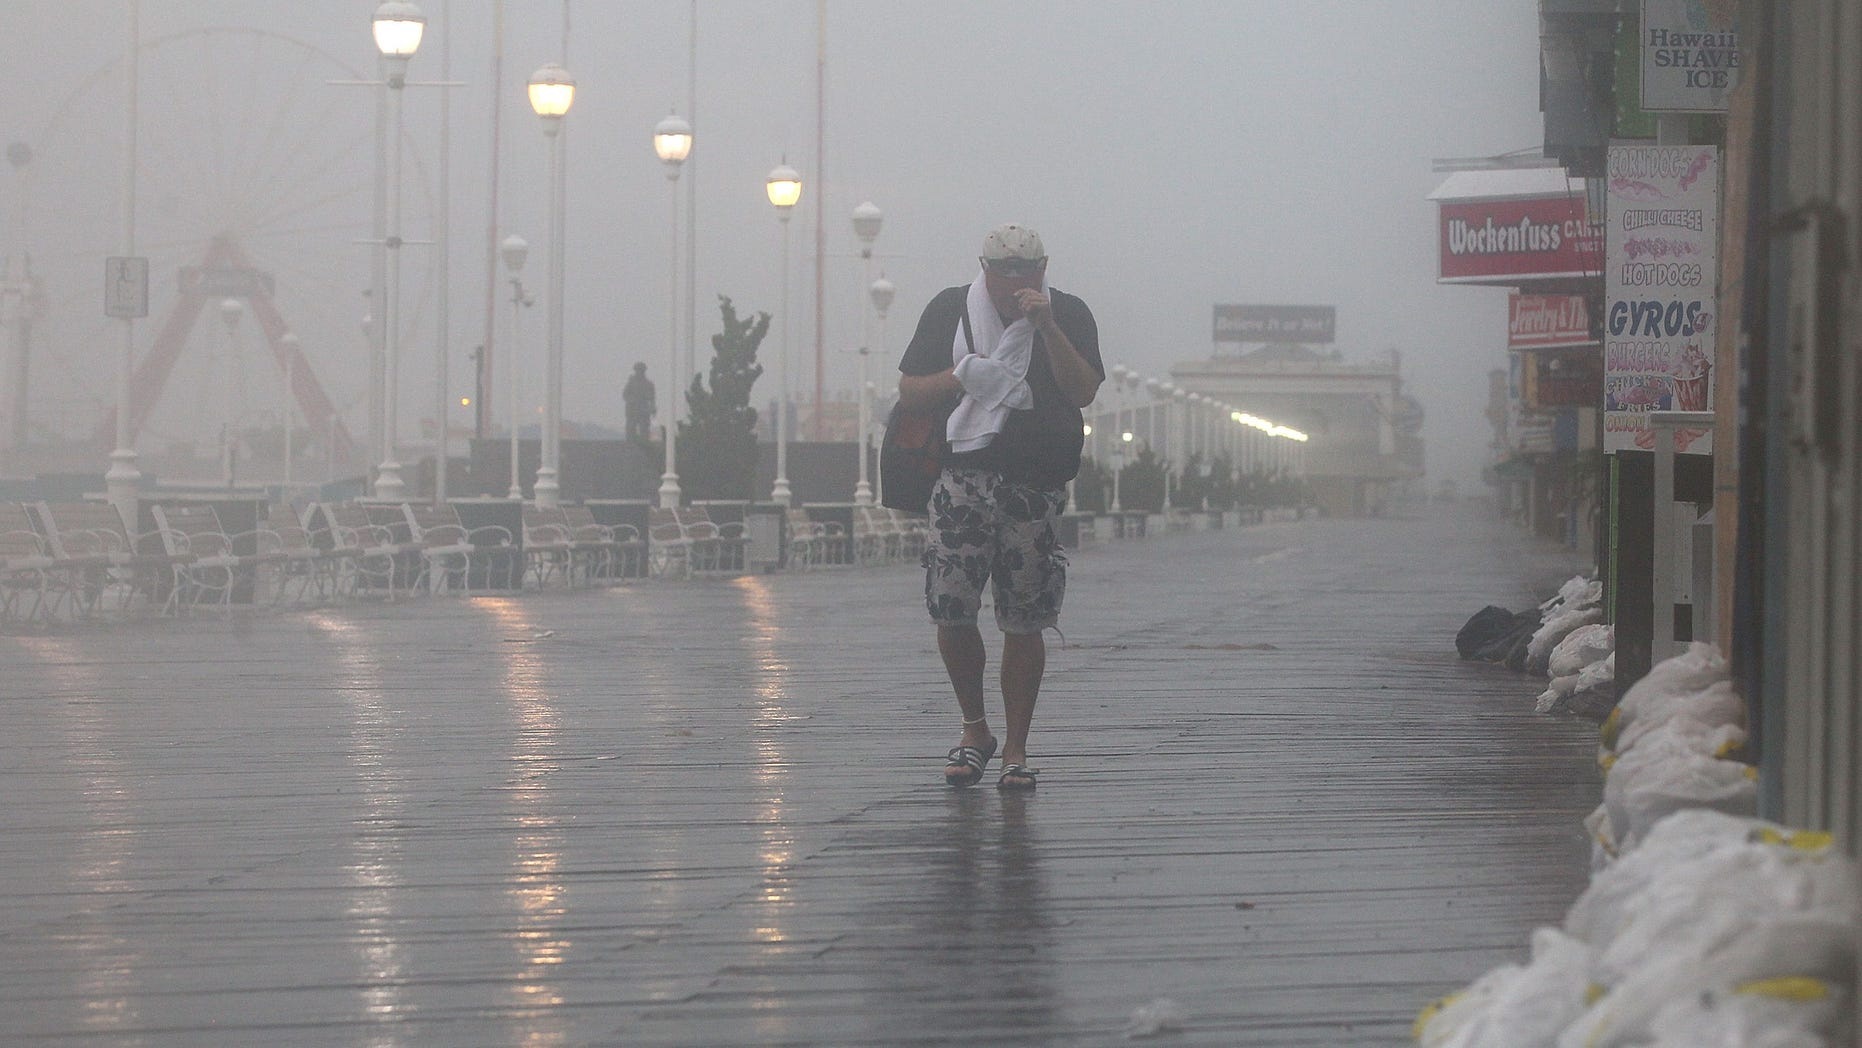 OCEAN CITY, MD - AUGUST 27: A man walks down the board walk as winds from approaching Hurricane Irene start hit the area on August 27, 2011 in Ocean City, Maryland. The state of Maryland has declared a state of emergency as heavy winds and surf from Hurricane Irene approaches the coast.  (Photo by Mark Wilson/Getty Images)